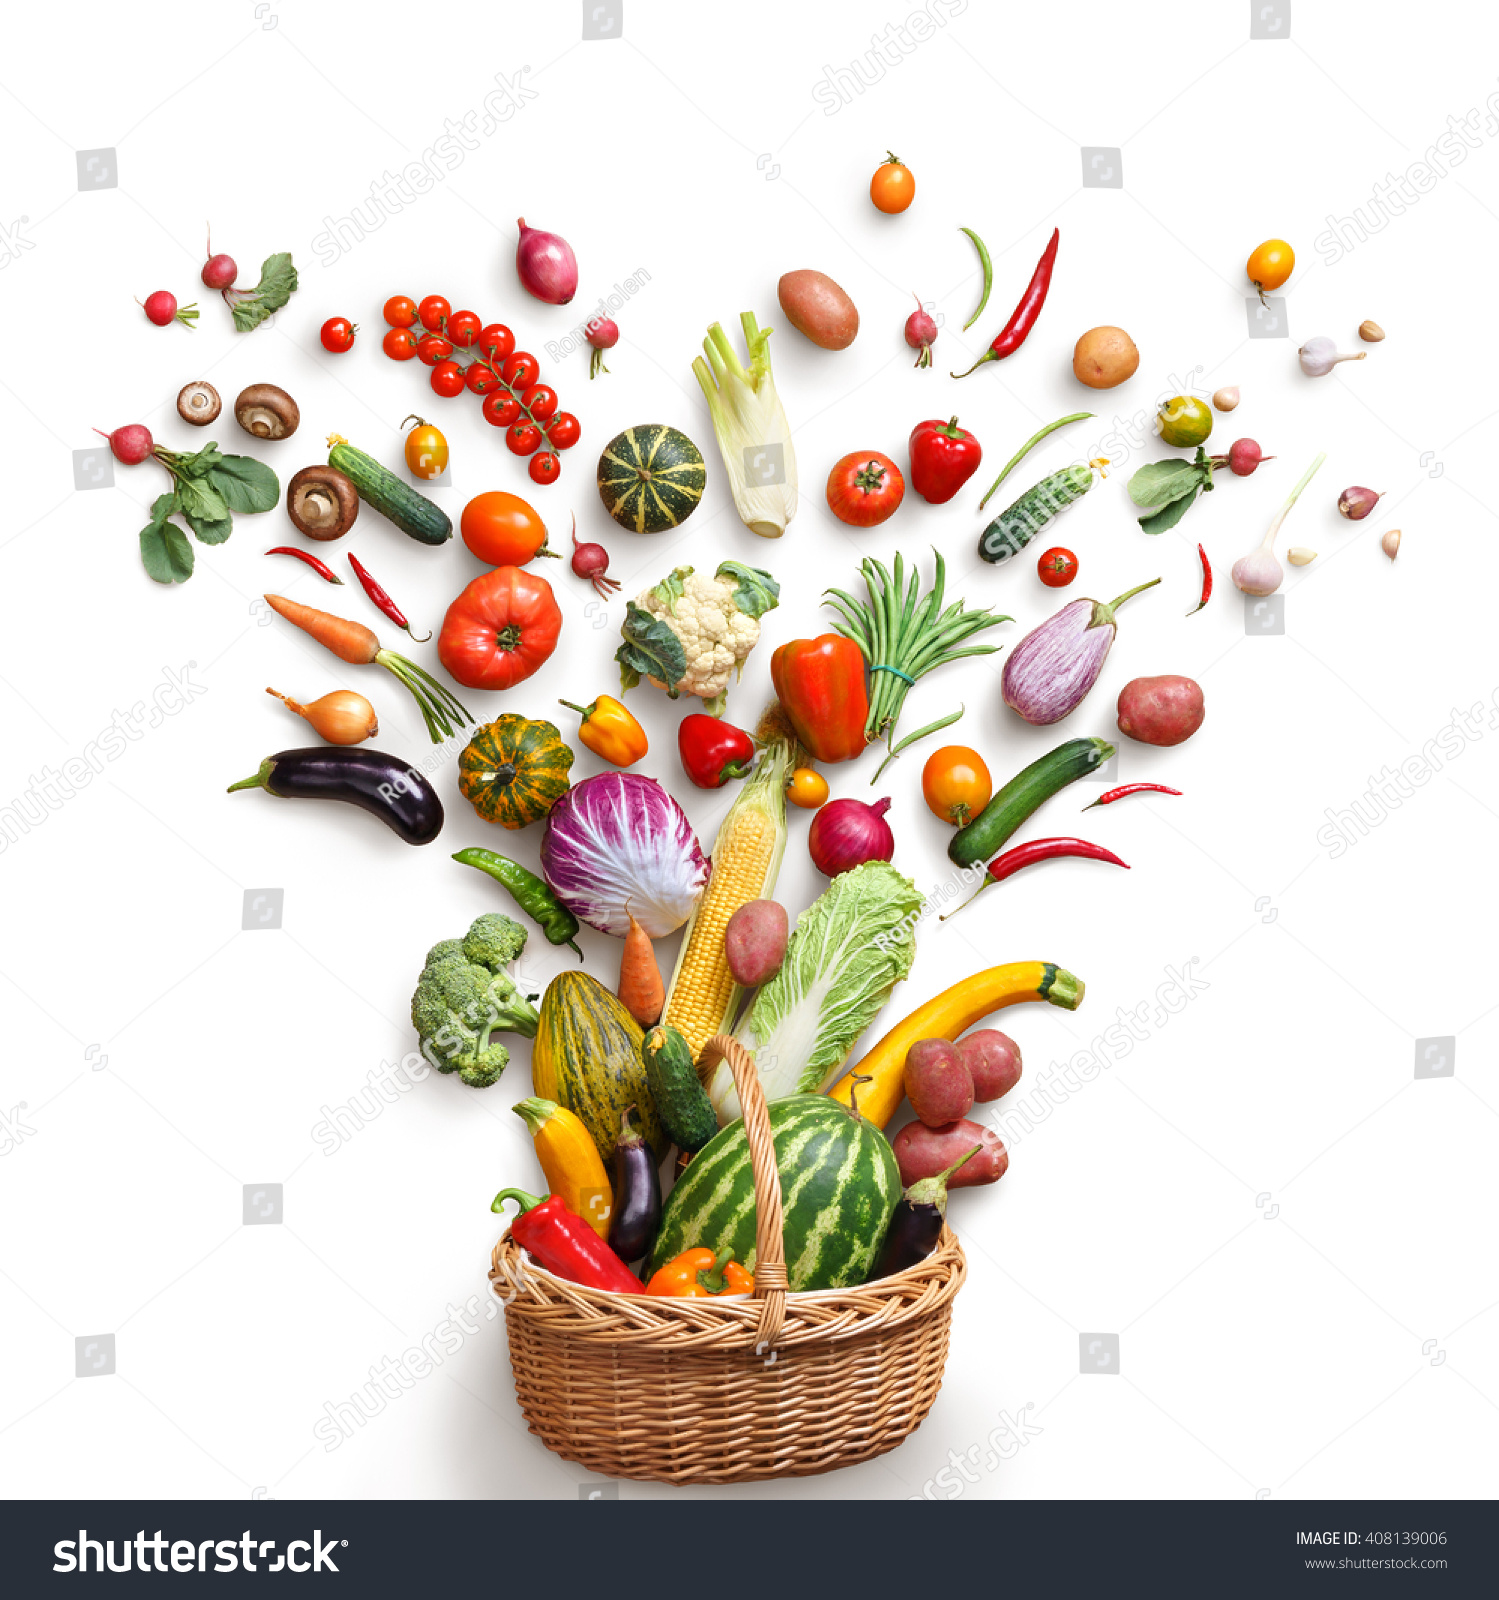 Healthy food in basket. Studio photography of different fruits and vegetables isoleted on white backdrop, top view. High resolution product. #408139006